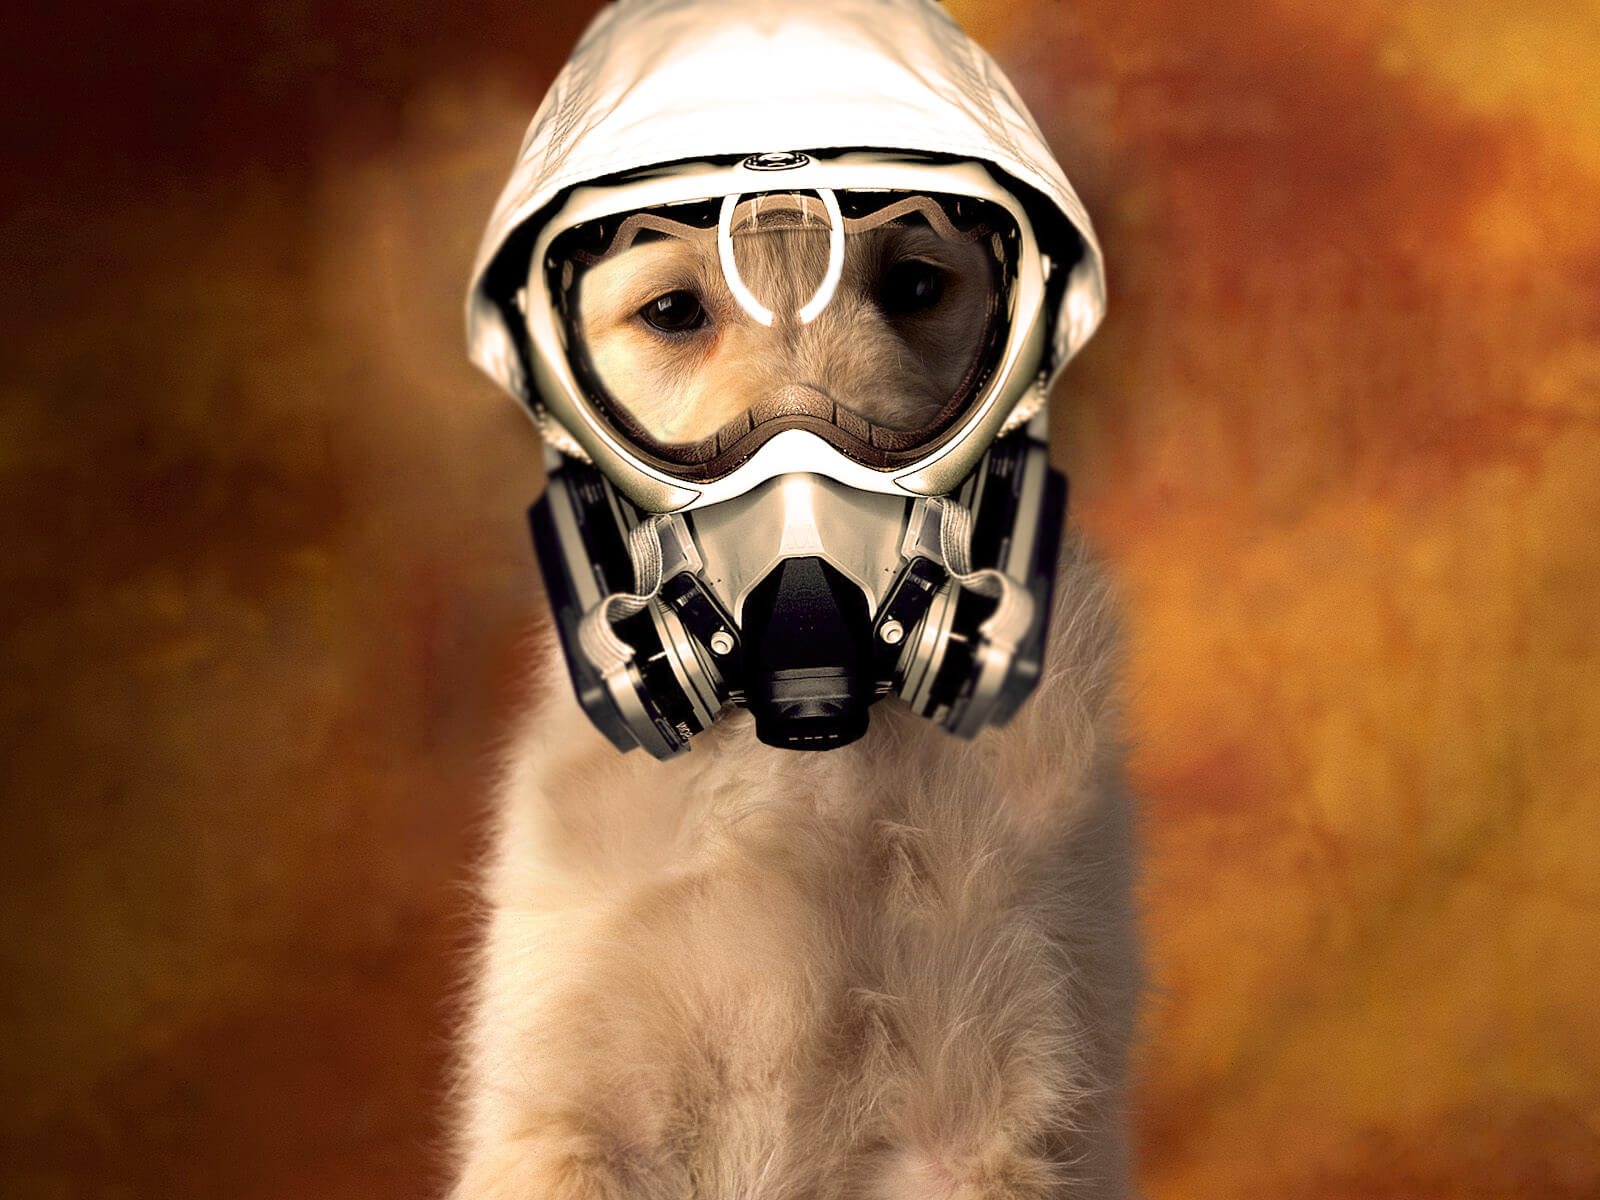 picture of a dog with bad breath in a gas mask!